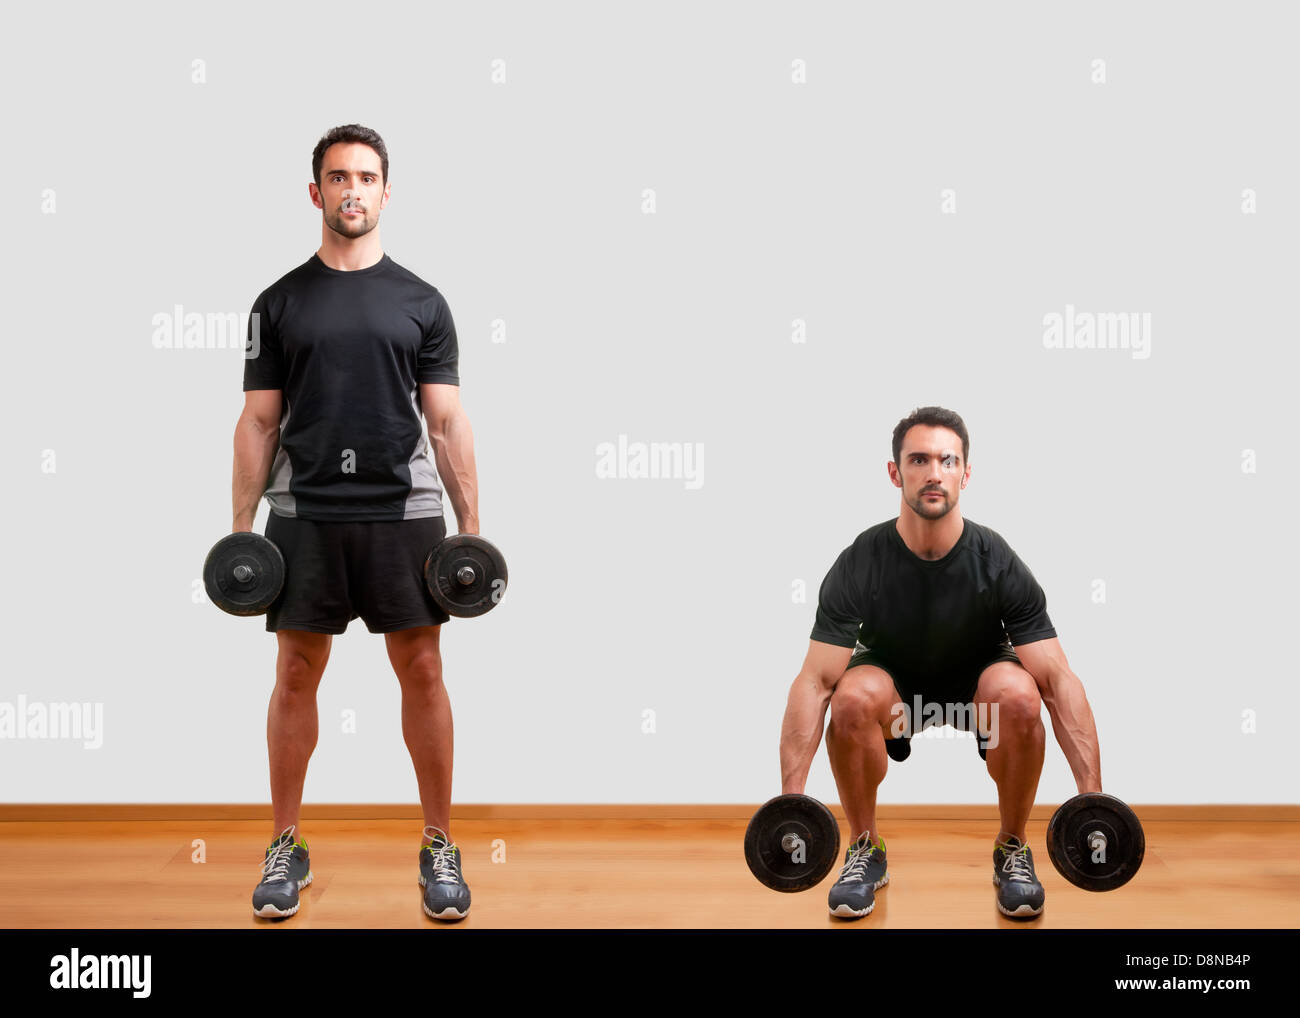 Personal Trainer doing dumbbell squat for training his legs - Stock Image